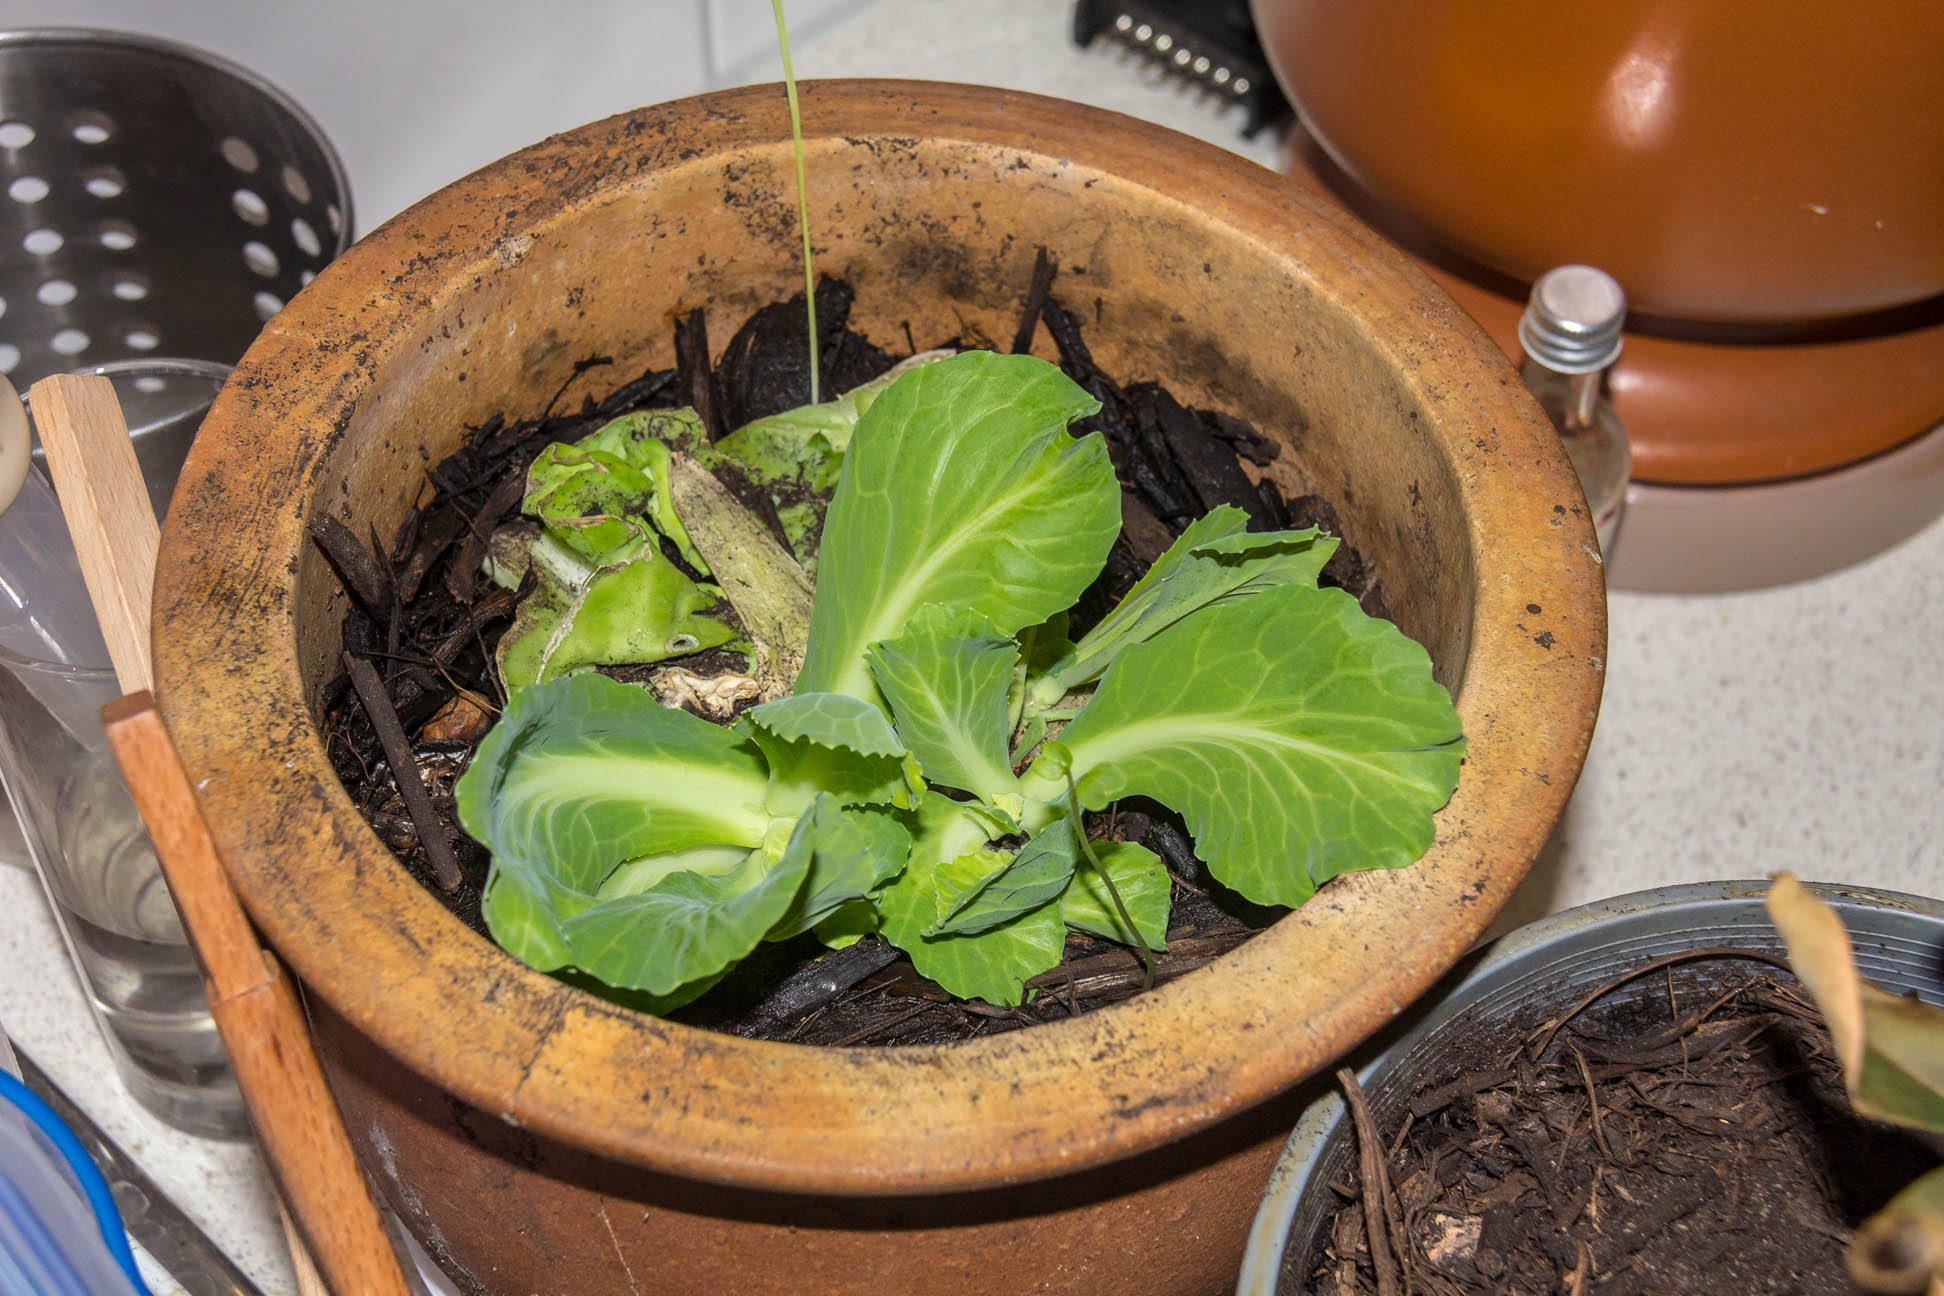 14/05/15 Day 30: Left it for 6 days and the leaves have grown out of the pot =p